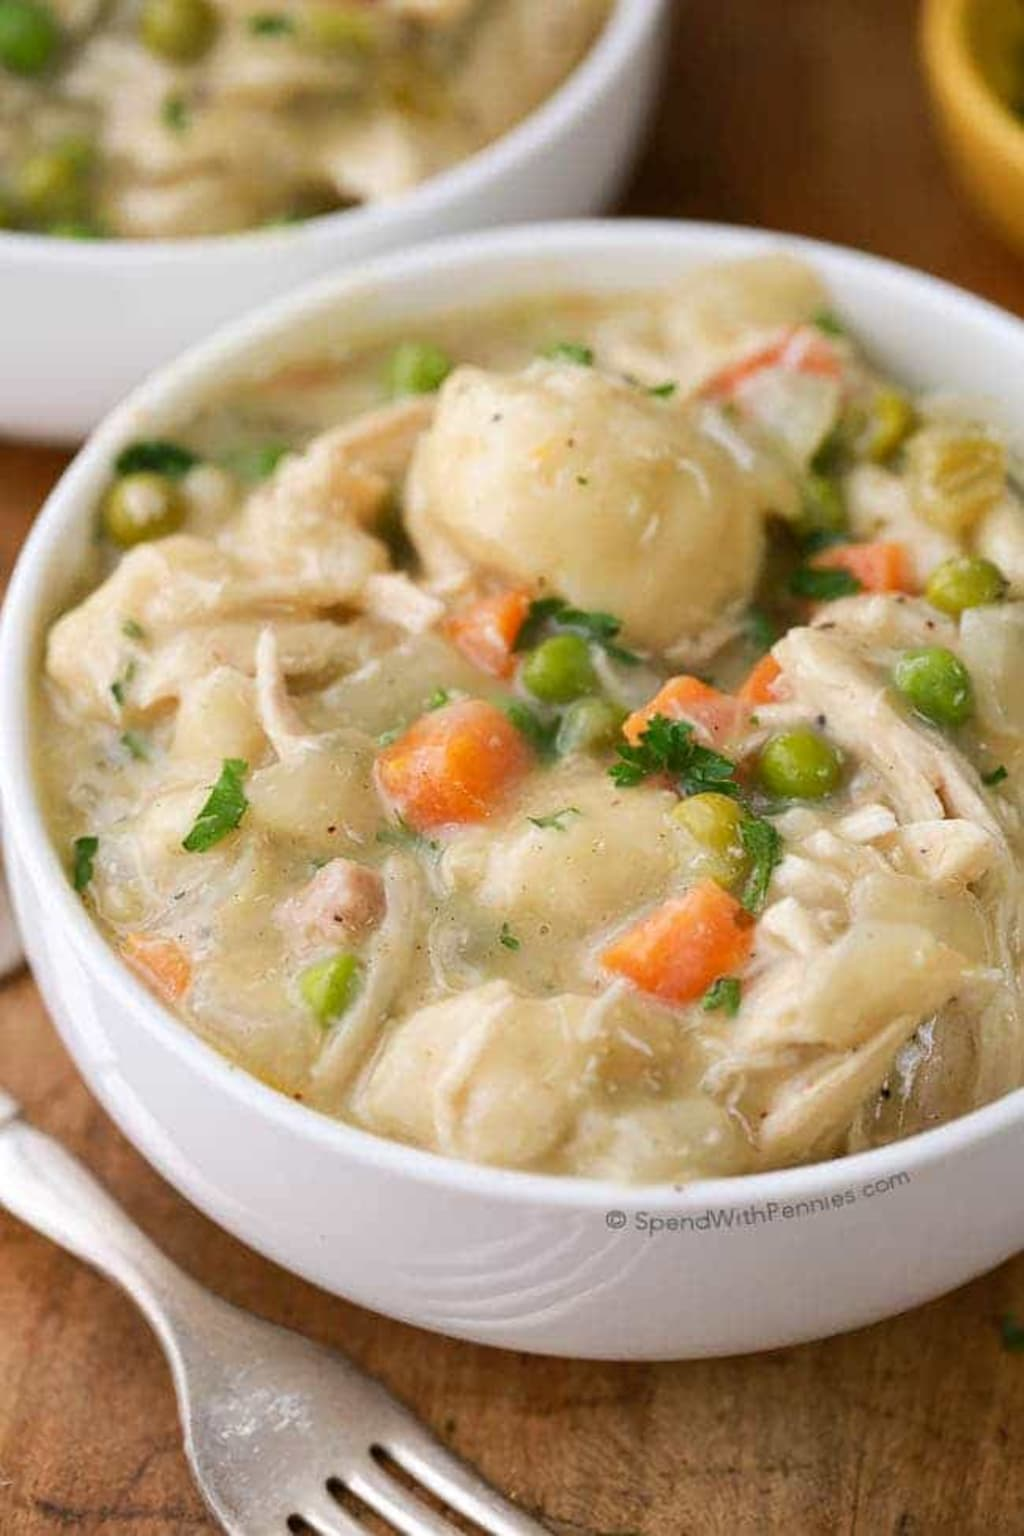 Under Ten Meal Series: Chicken and Dumplings